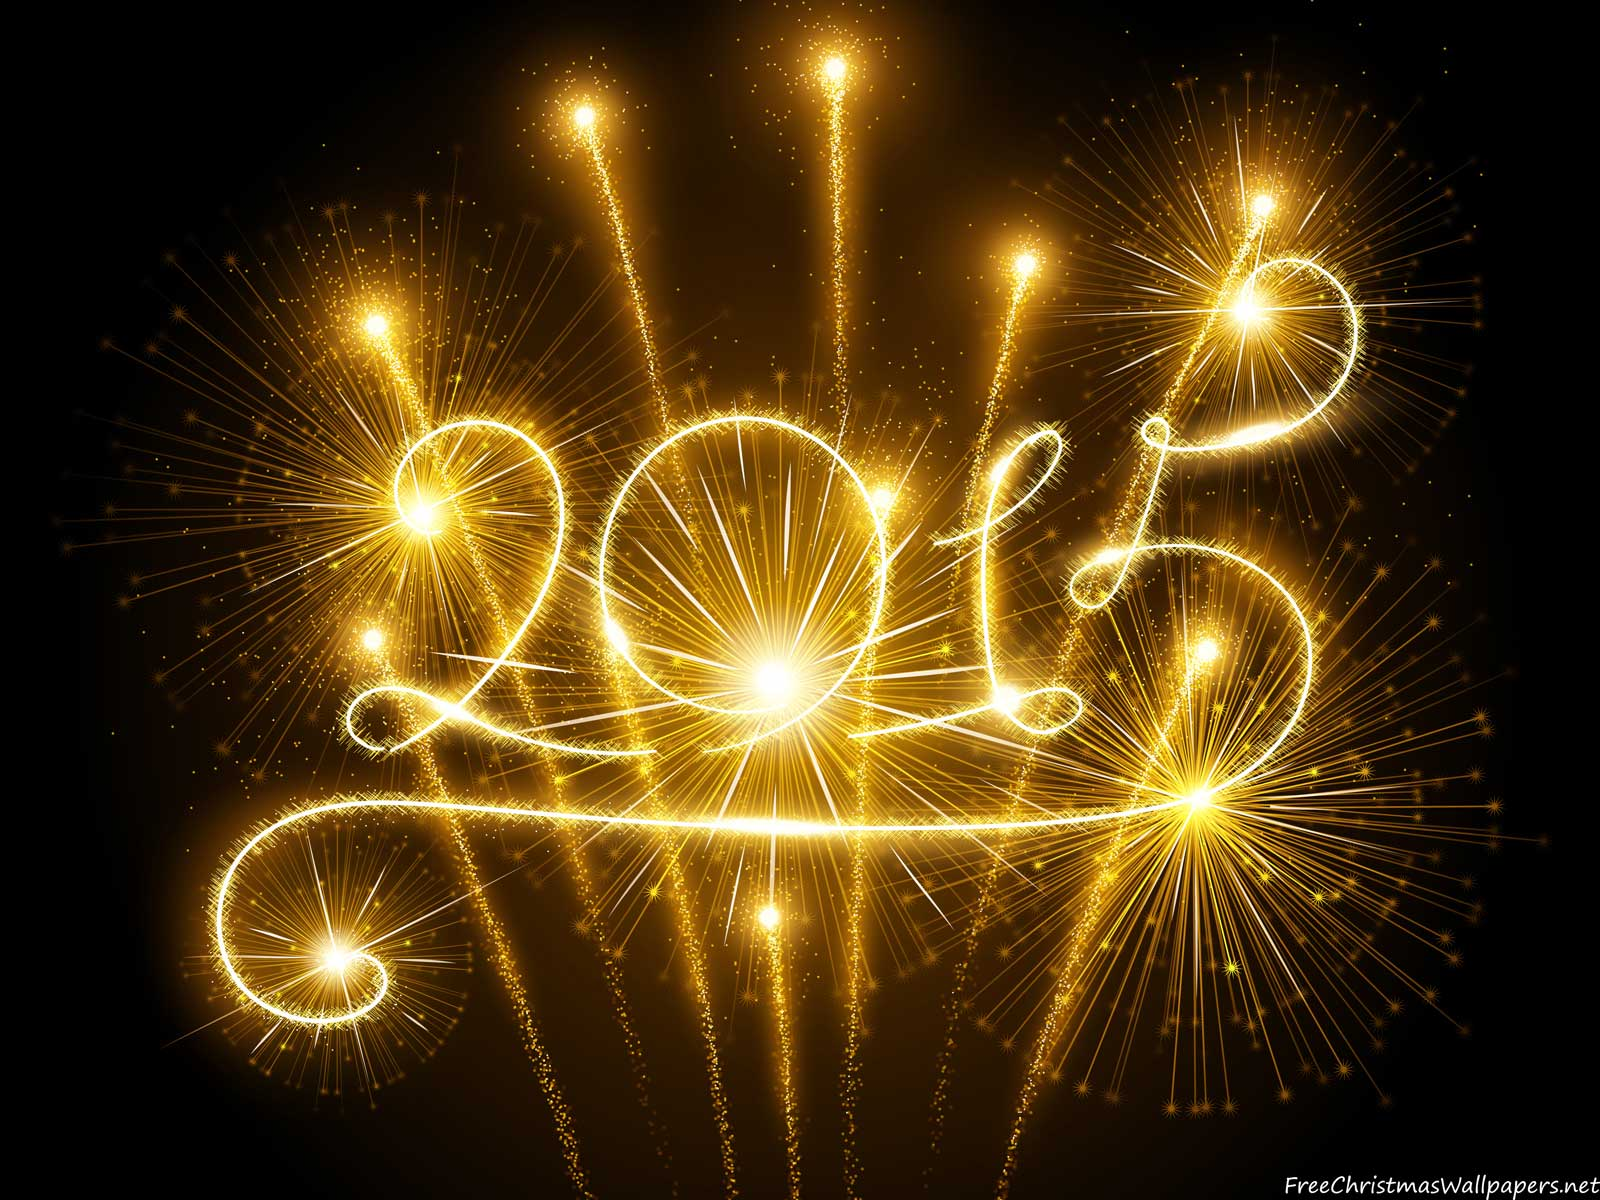 happy-new-year-2015-1600-1200-826699